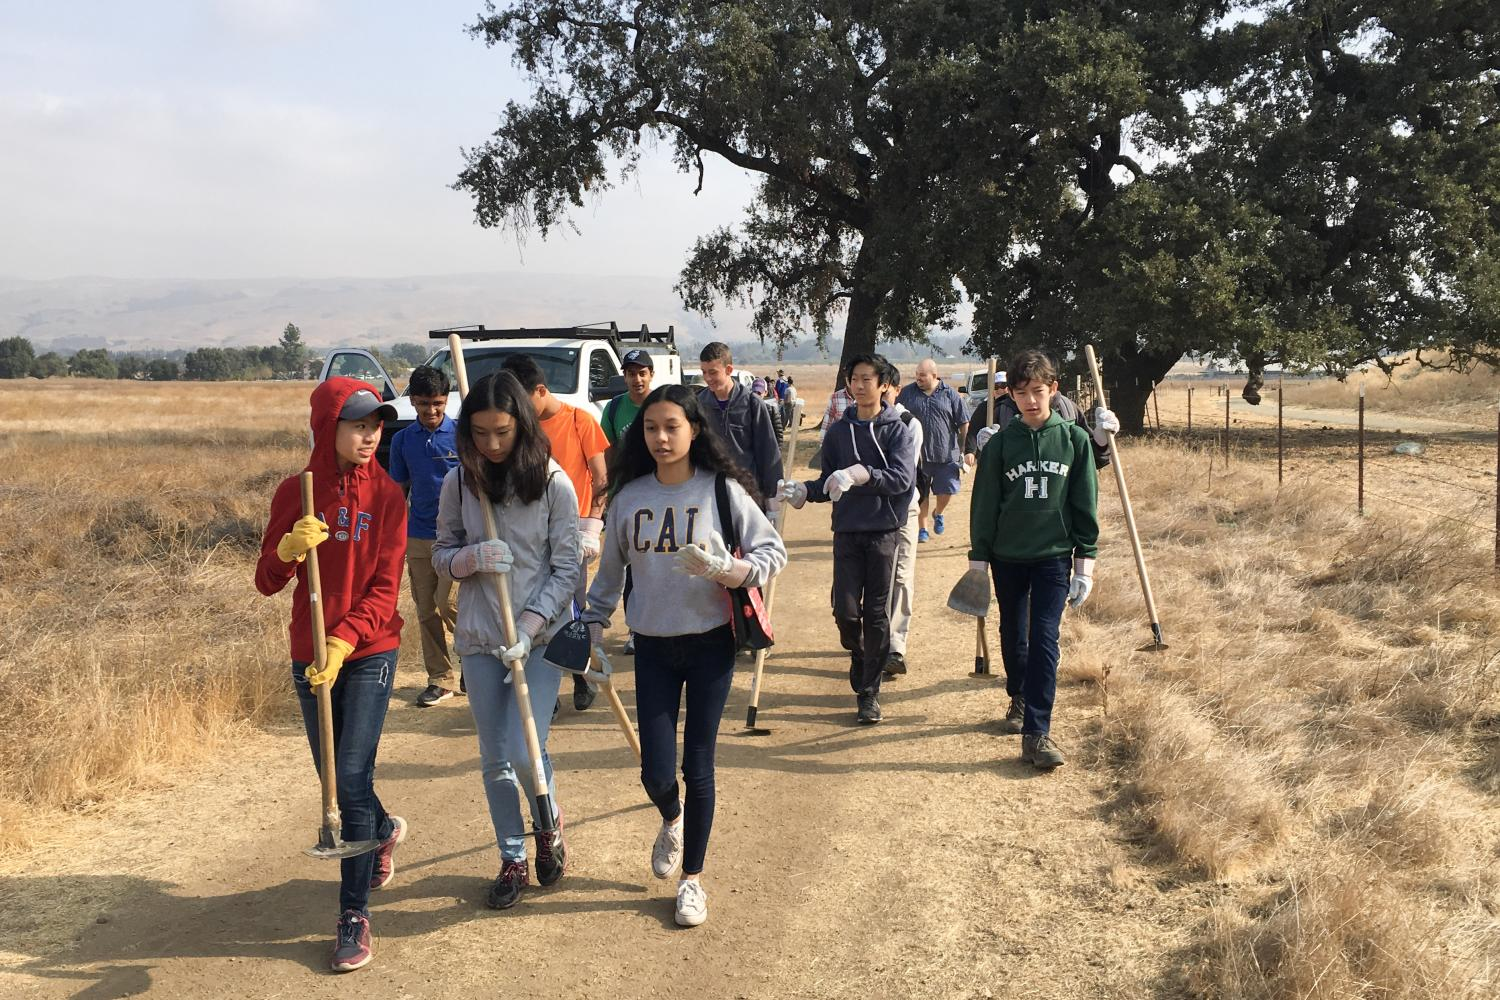 """A group of freshmen walk along a trail to their next trail repair site at the Coyote Valley Open Space Preserve. """"I'm most looking forward to… getting the opportunity to see my advisees get closer together. [If] we get out there and put in some sweat and some elbow grease into this project, I can't imagine something that would make us bond more closely together,"""